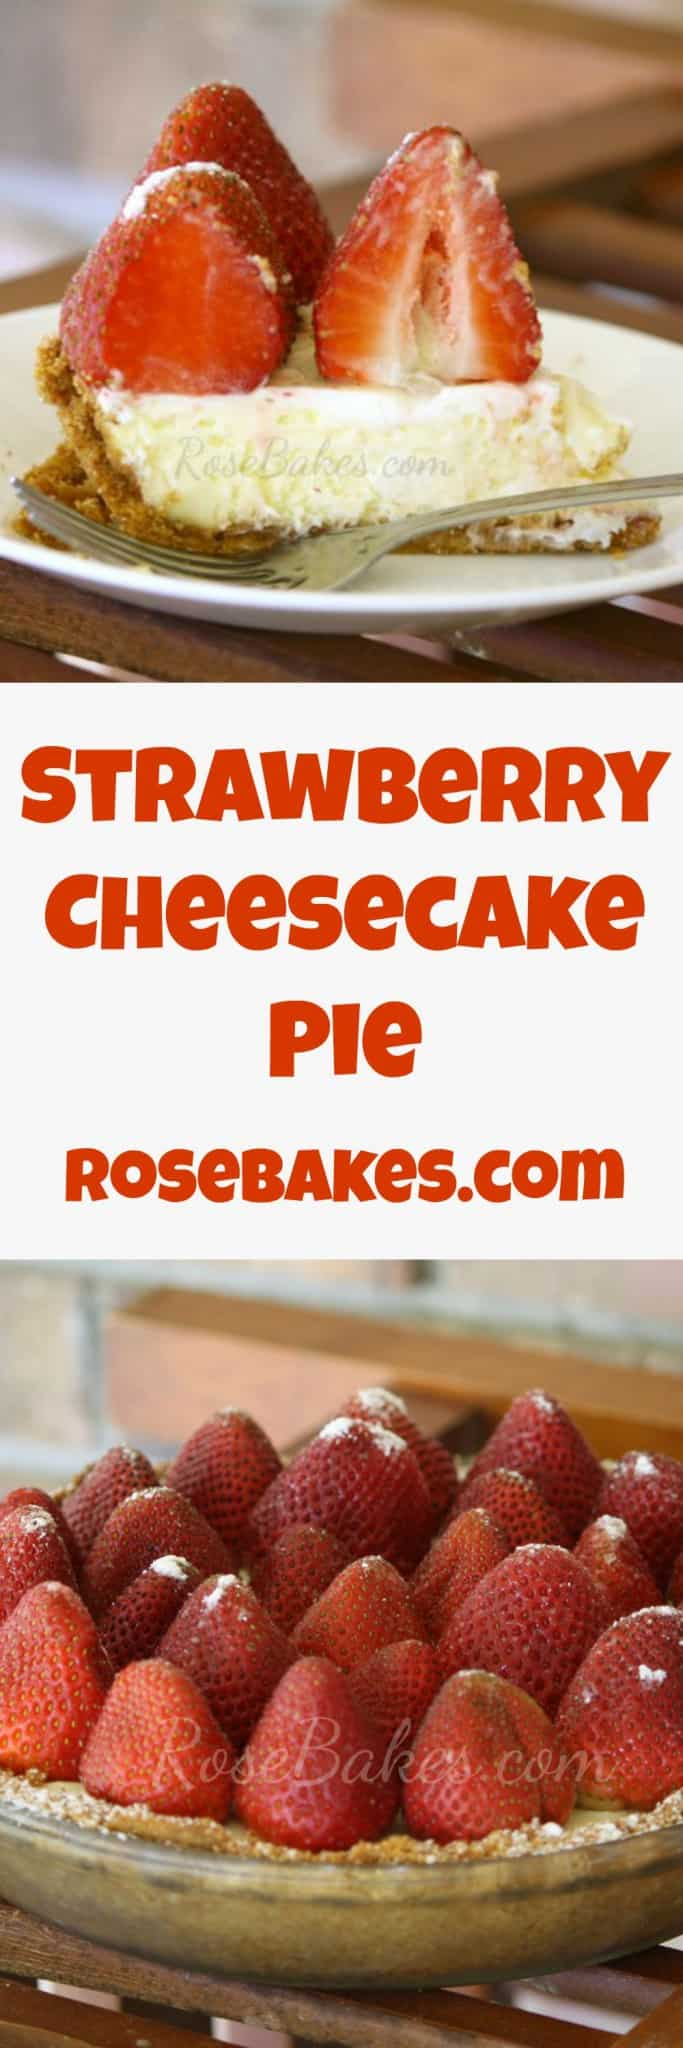 Strawberry Cheesecake Pie by Rose Bakes